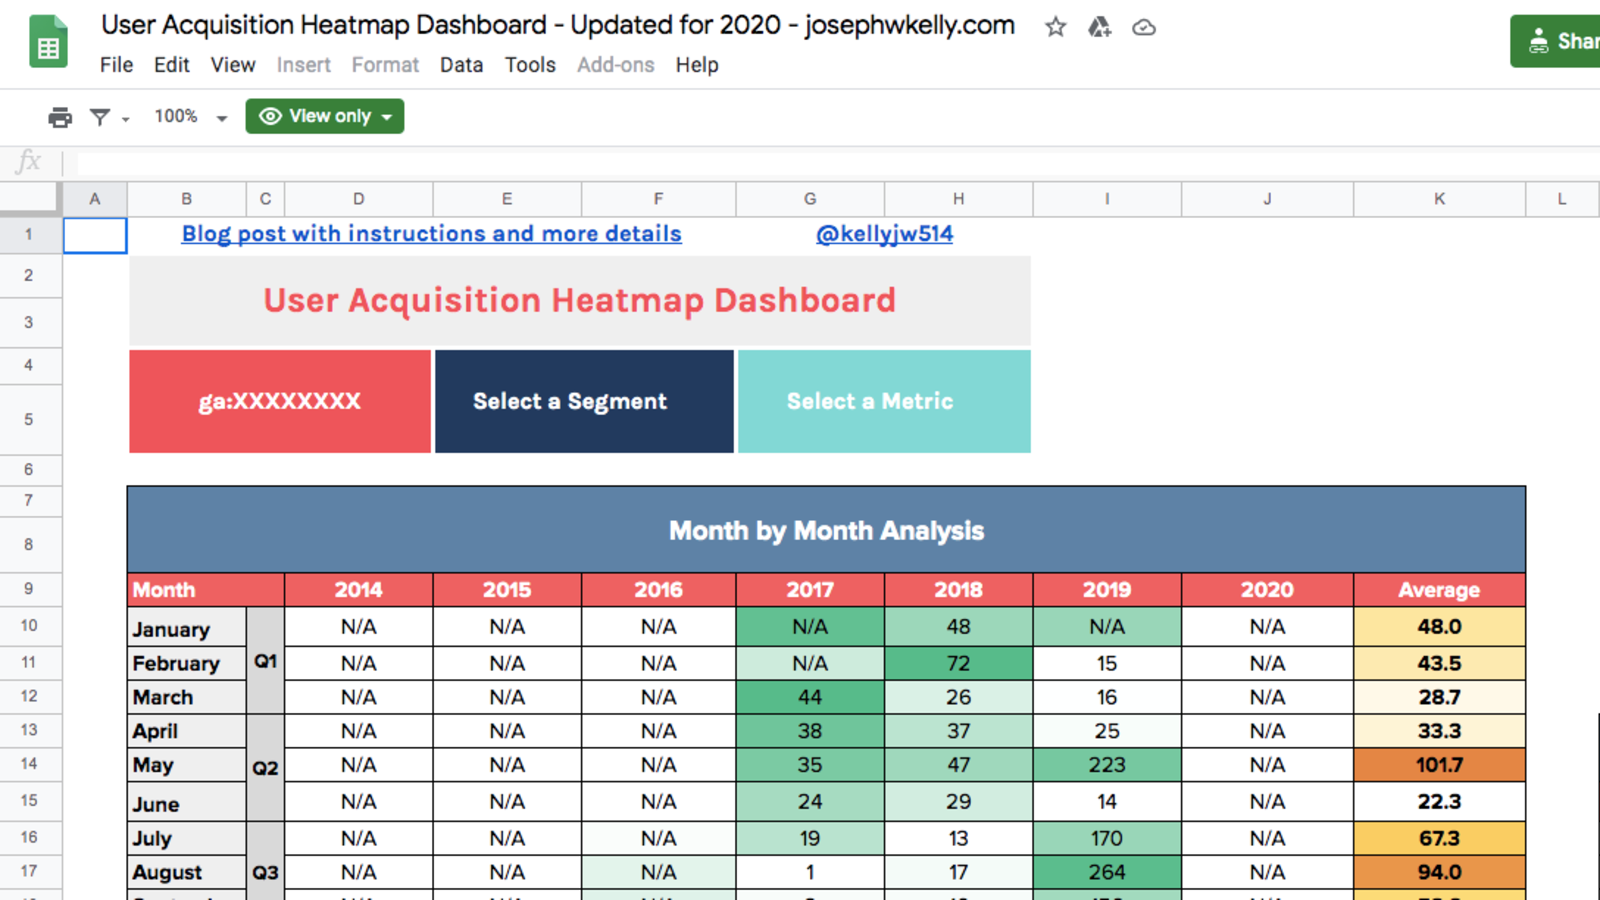 User Acquisition Heatmap Dashboard